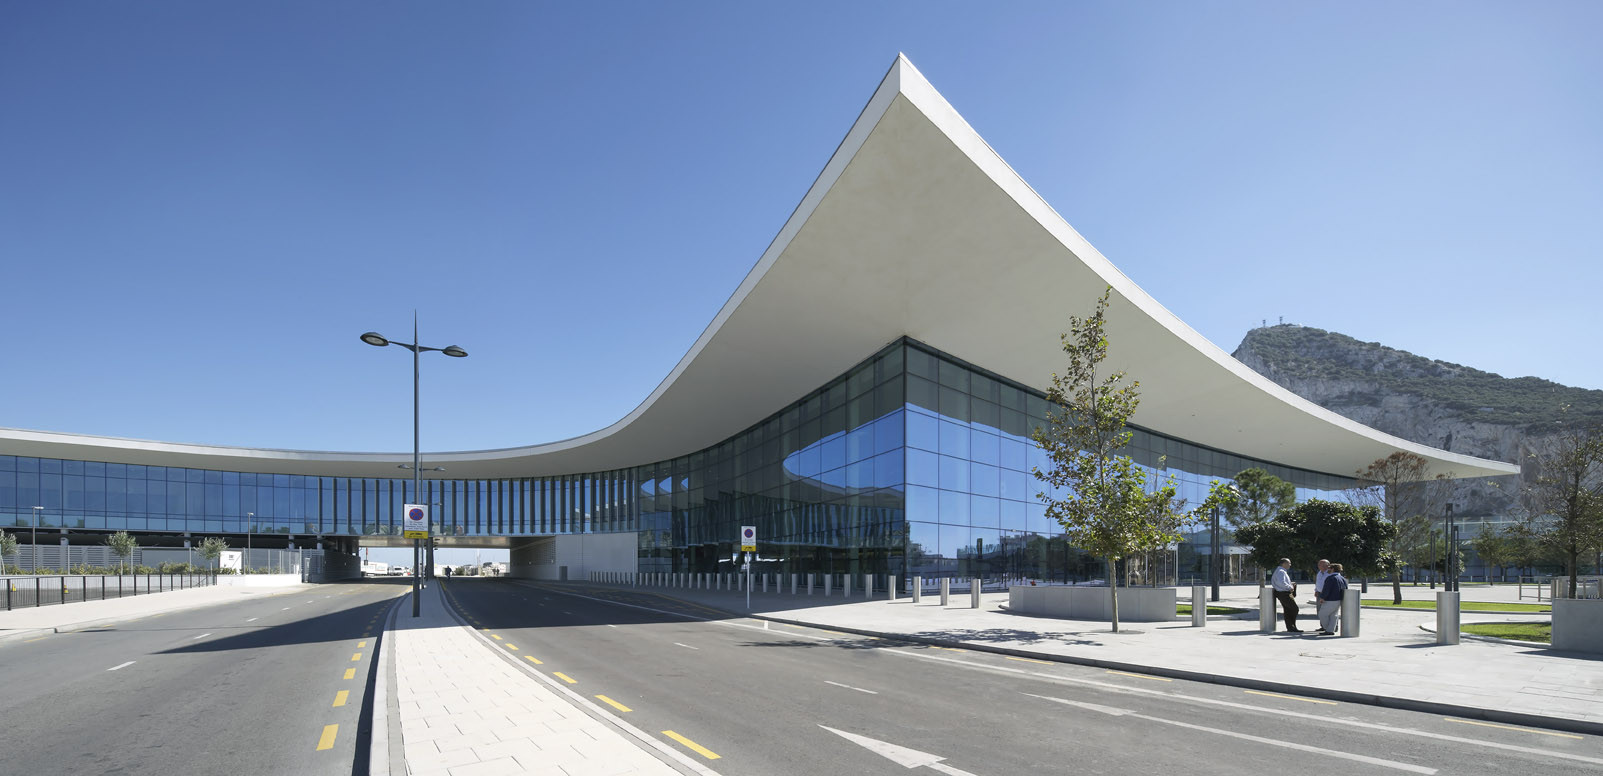 Gibraltar Airport Blur Architects 3dreid Architects